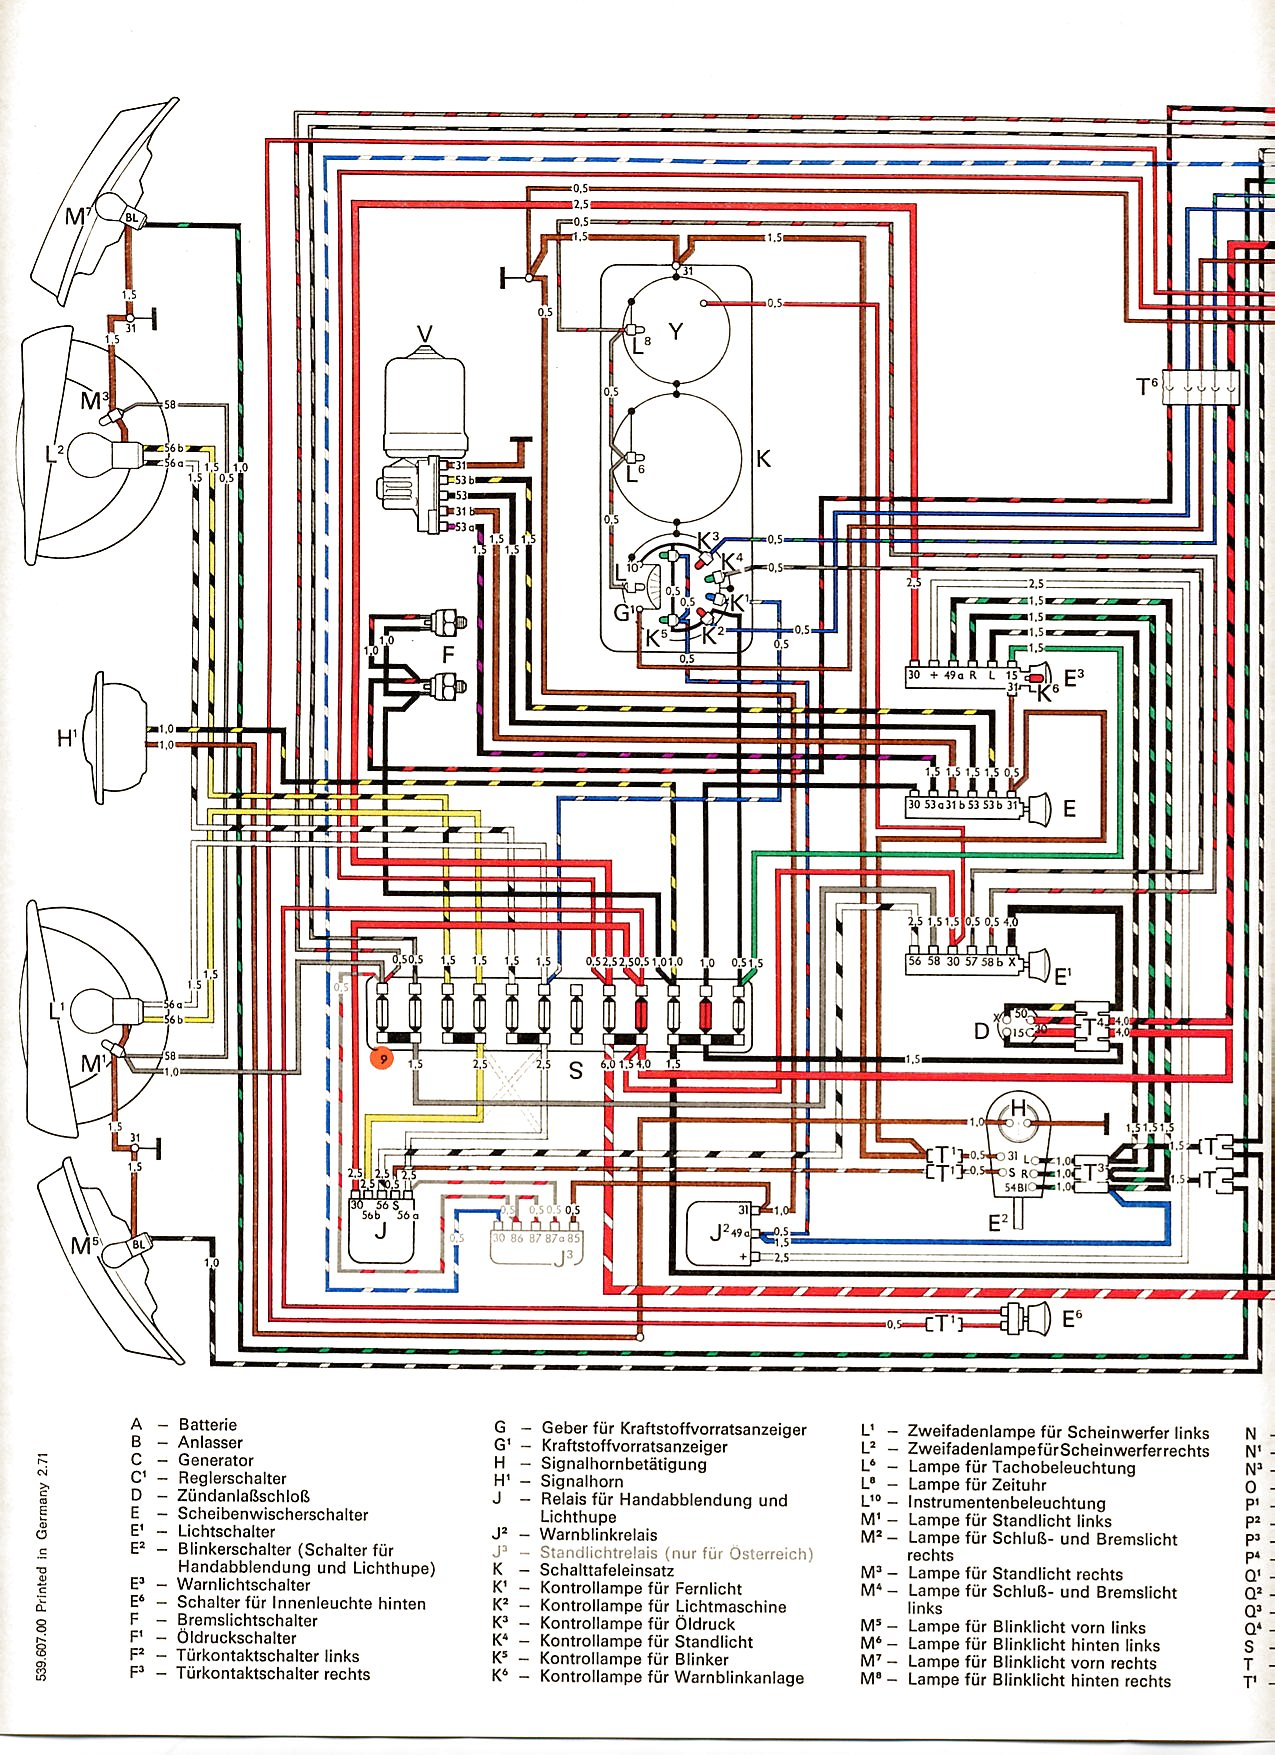 1968 vw beetle wiring diagram 1968 printable wiring diagram 1968 vw beetle wiring diagram jodebal com source